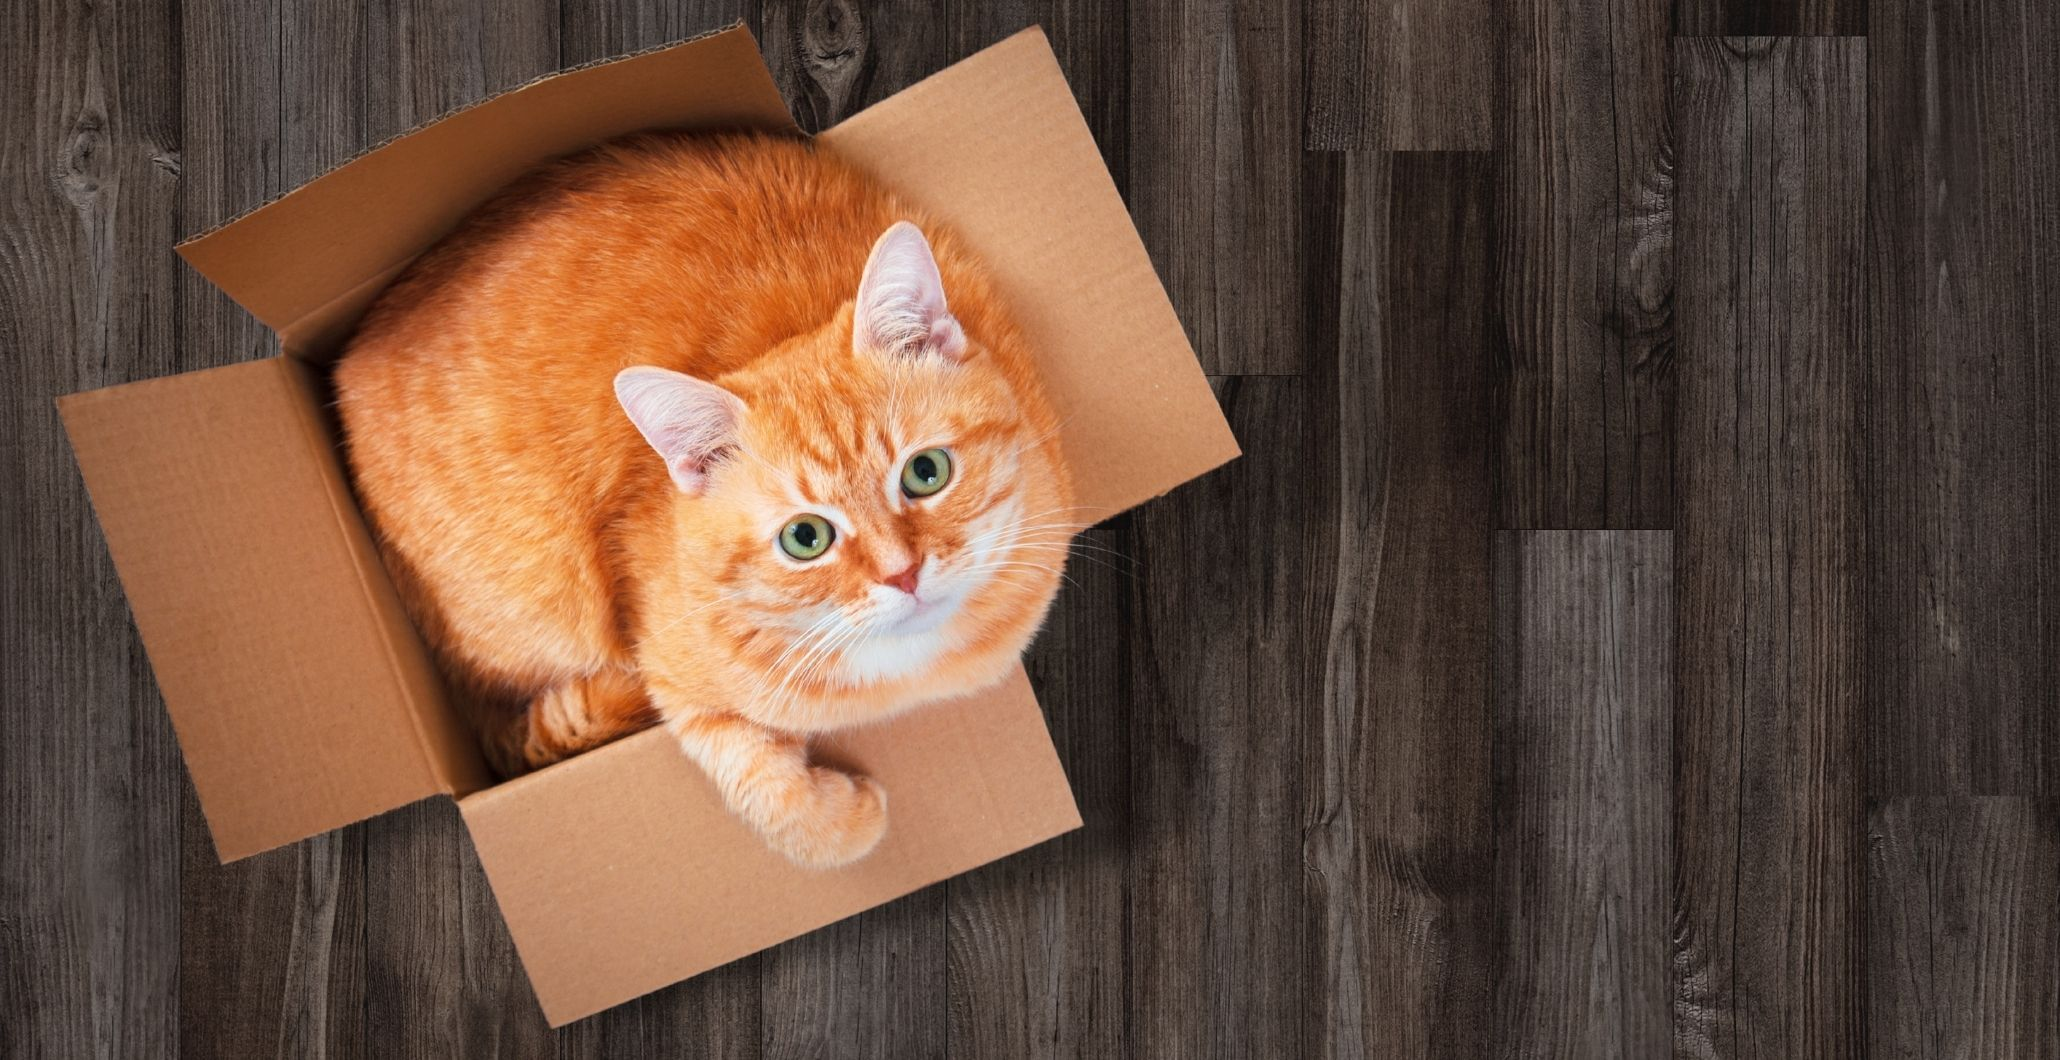 Decoding the Mysteries of Cats, or Why Cats Do What They Do